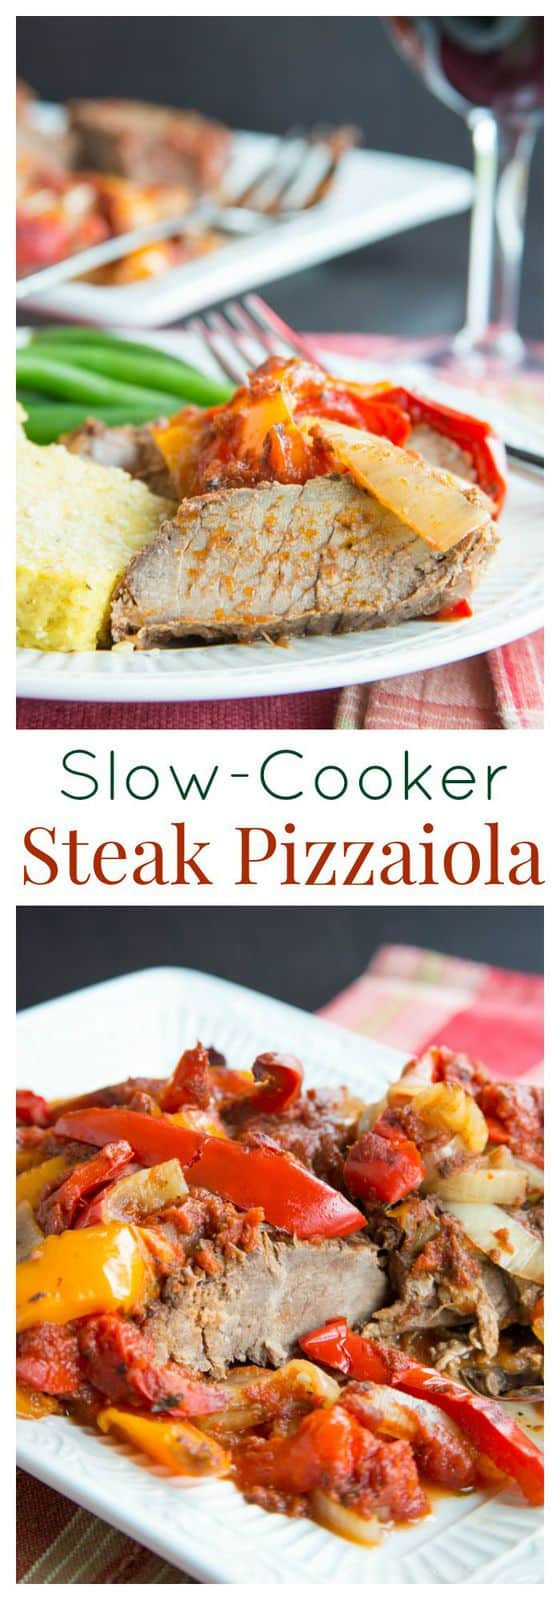 Slow Cooker Steak Pizzaiola Slow Cooker Steak Pizzaiola - a super simple family dinner that takes just a few pantry ingredients. Let it cook all day in the crockpot and come home to a hearty dinner. | cupcakesandkalechips.com | gluten free, paleo recipe